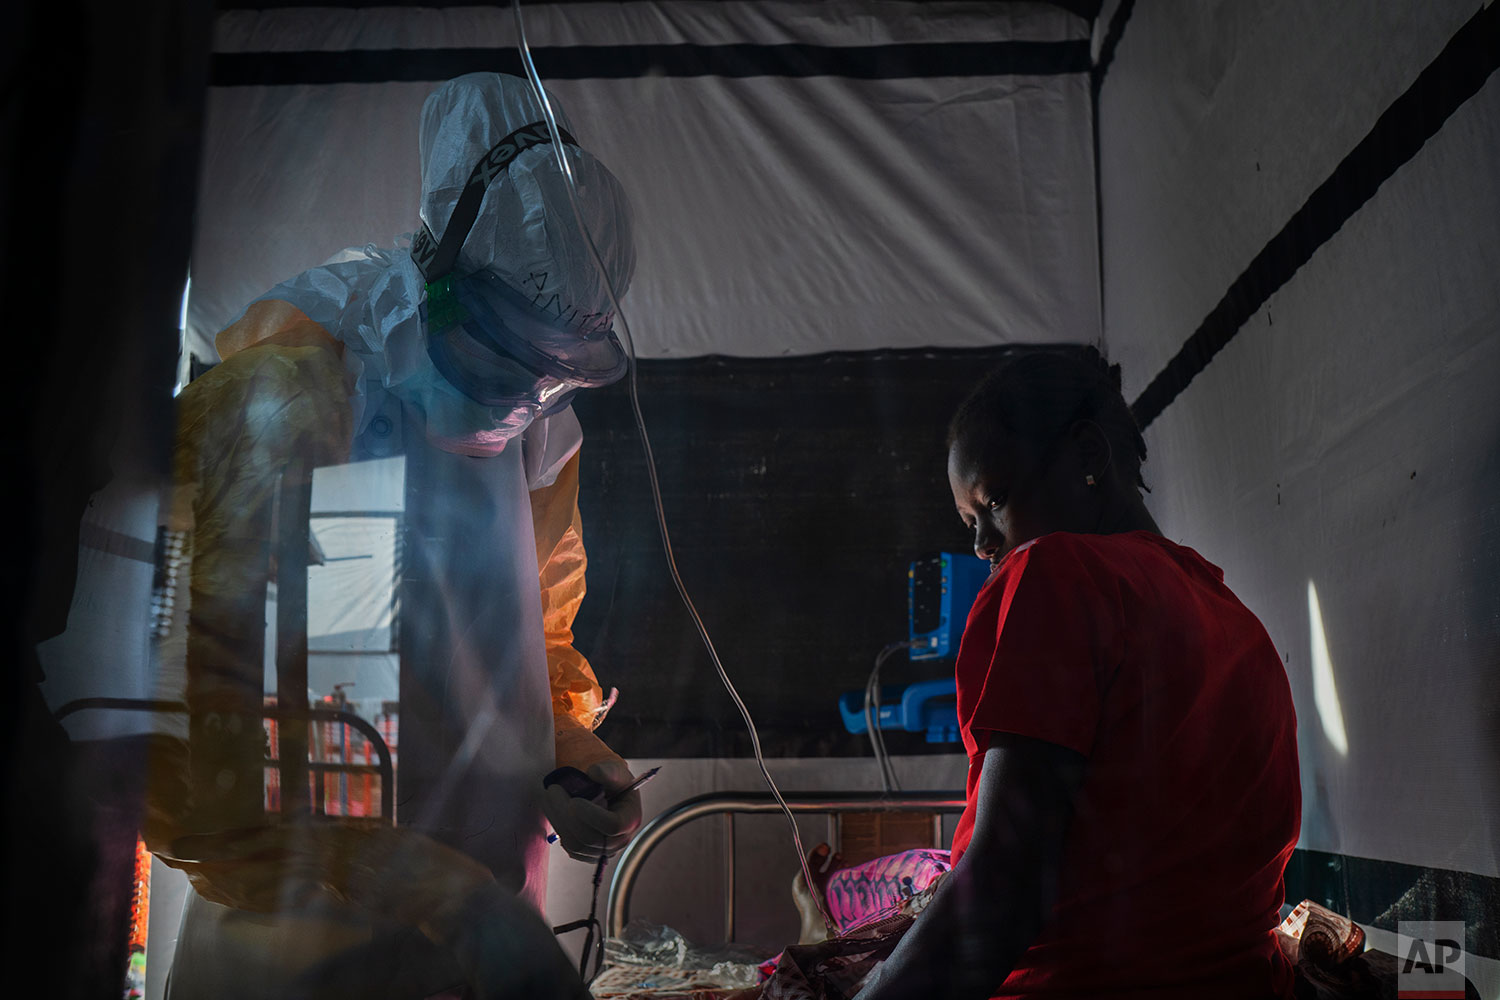 In this July 13, 2019 photo, health workers dressed in protective gear  check on Ivette Adania, 24, a mother of four whose husband died of Ebola, at an Ebola  treatment center  in Beni, Congo DRC.  (AP Photo/Jerome Delay)